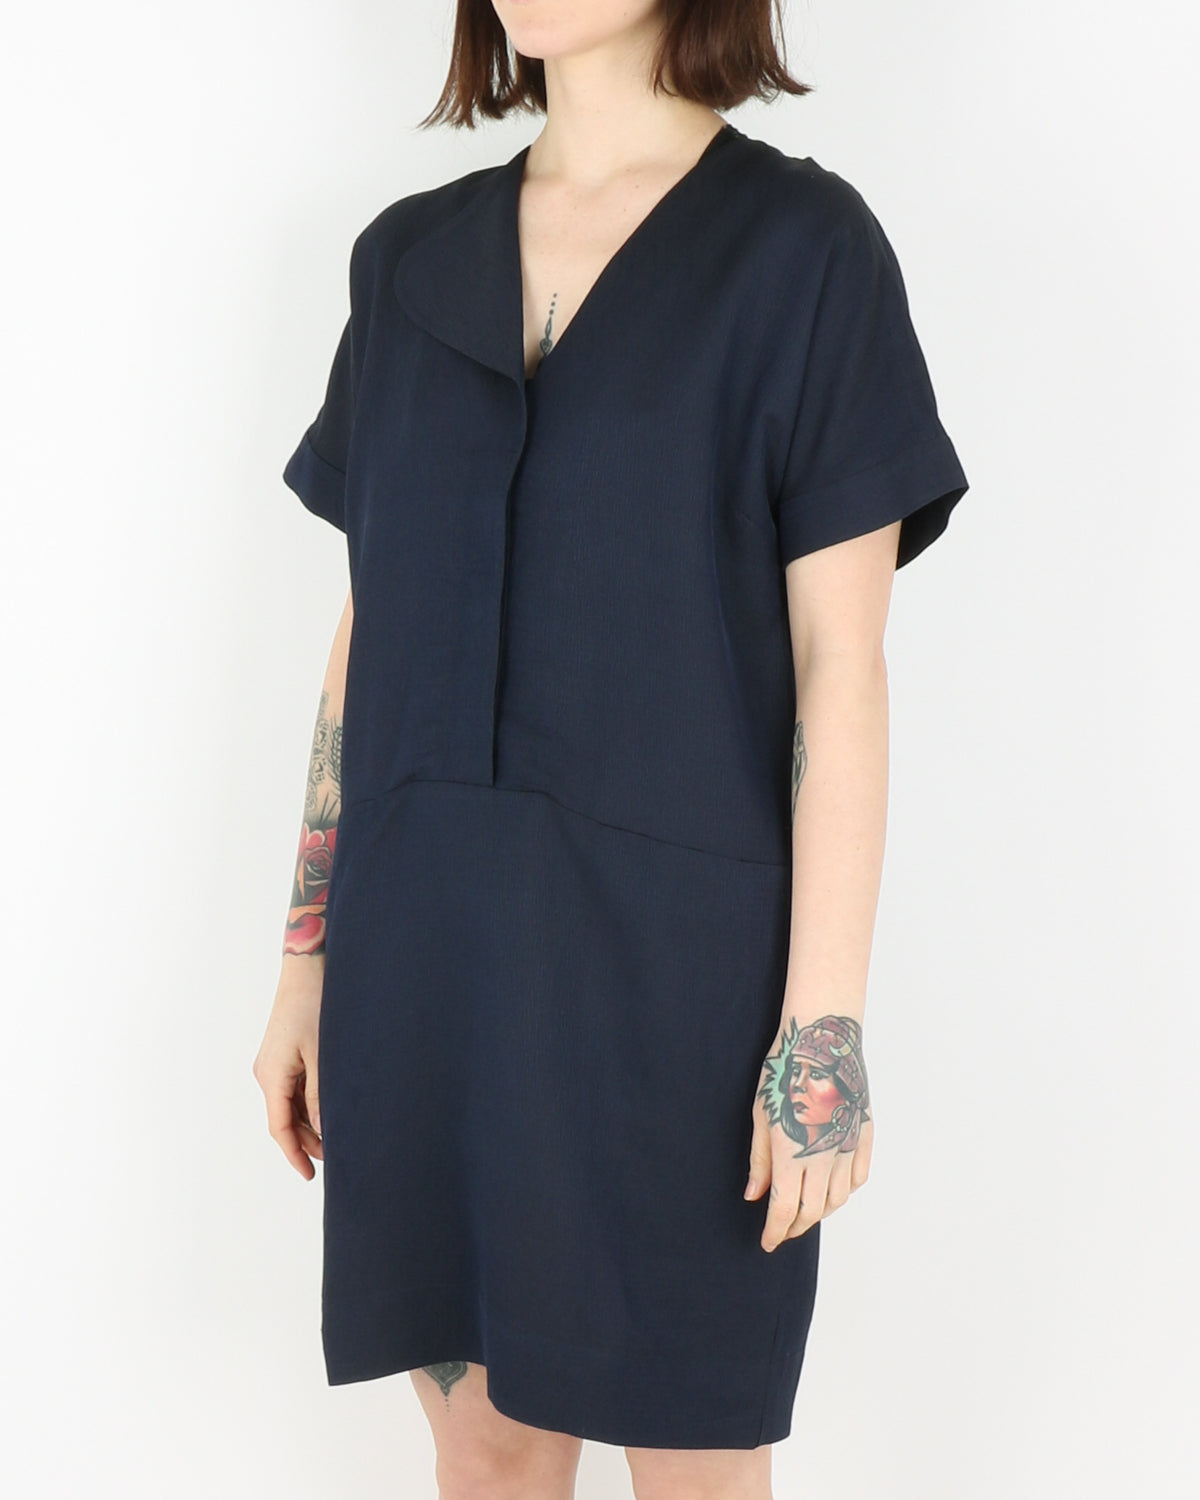 libertine libertine_deal dress_dark navy_view_2_3